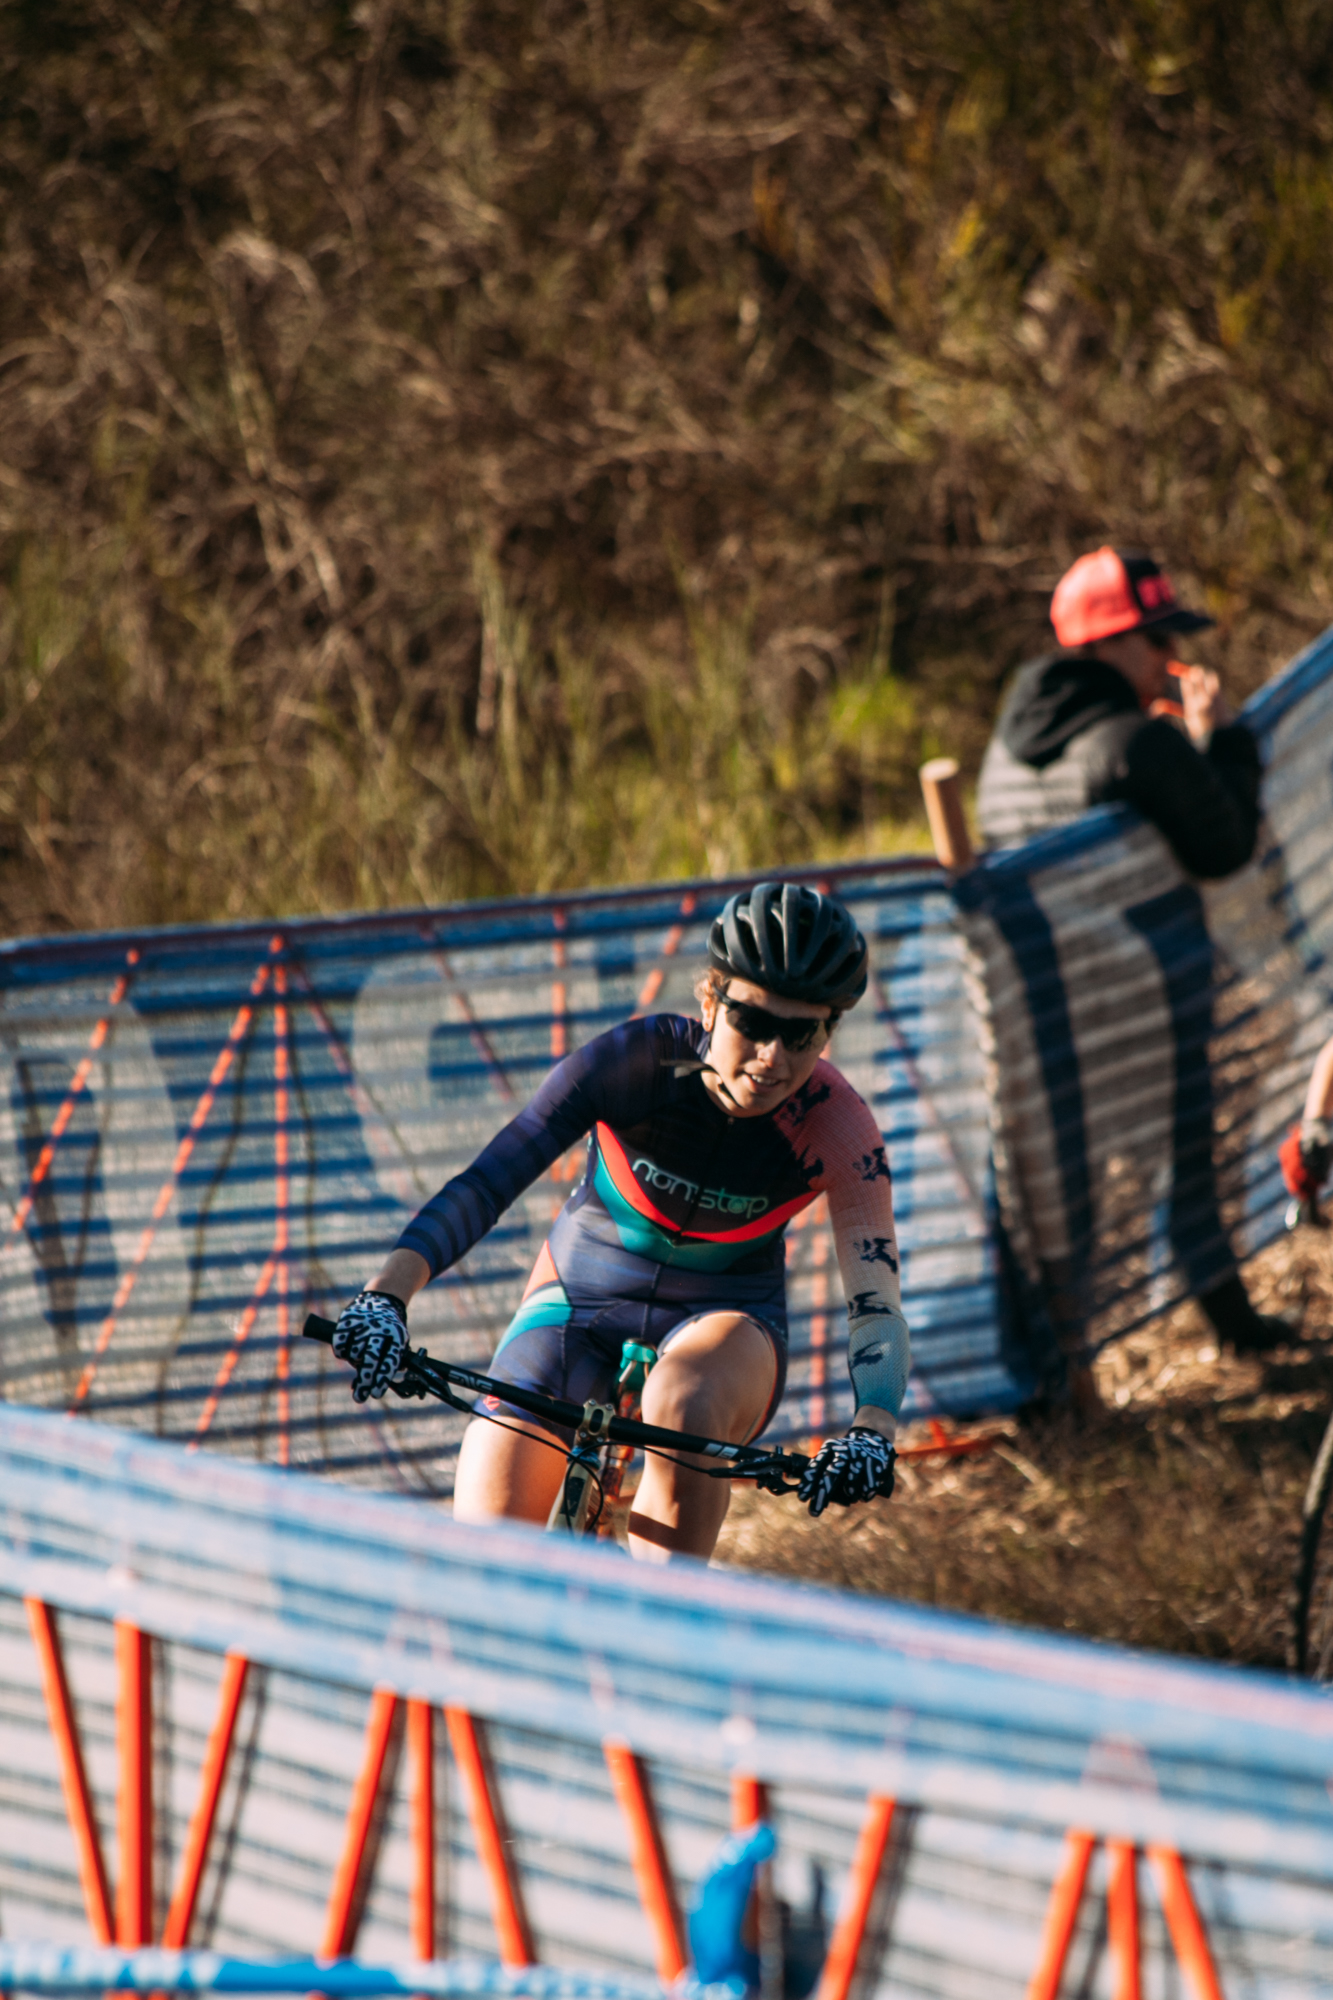 Cyclocross18_CCCX_BartonPark-mettlecycling14.jpg